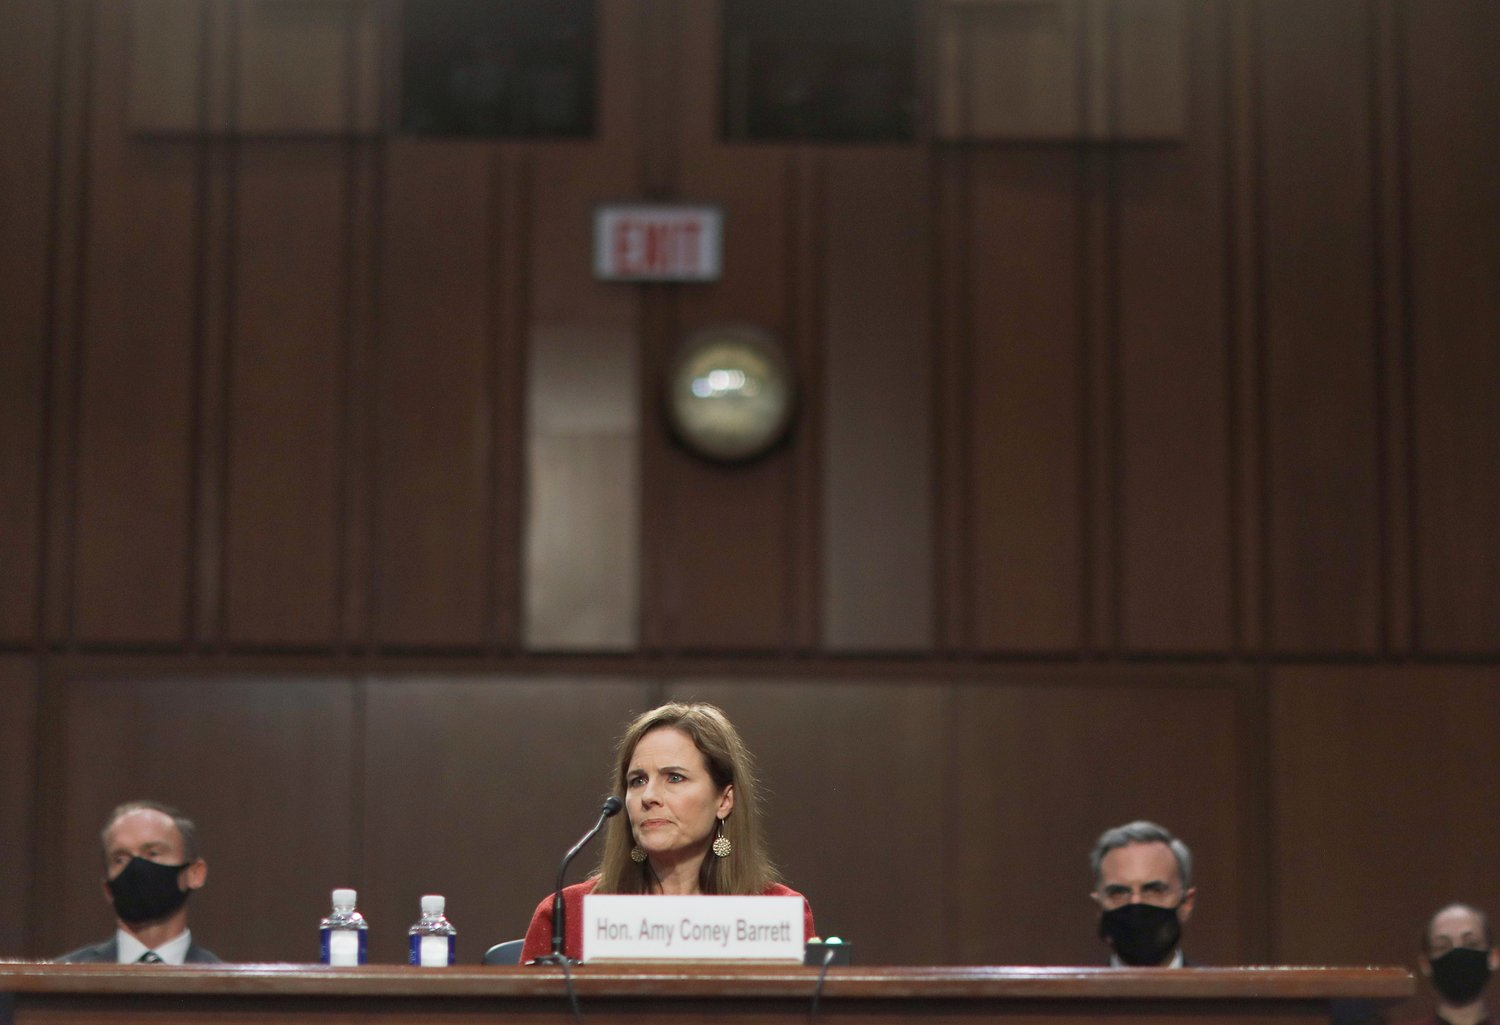 Judge Amy Coney Barrett of the U.S. Court of Appeals for the 7th Circuit, President Donald Trump's nominee for the U.S. Supreme Court, testifies during the second day of her confirmation hearing before the Senate Judiciary Committee on Capitol Hill in Washington, D.C. Oct. 13.